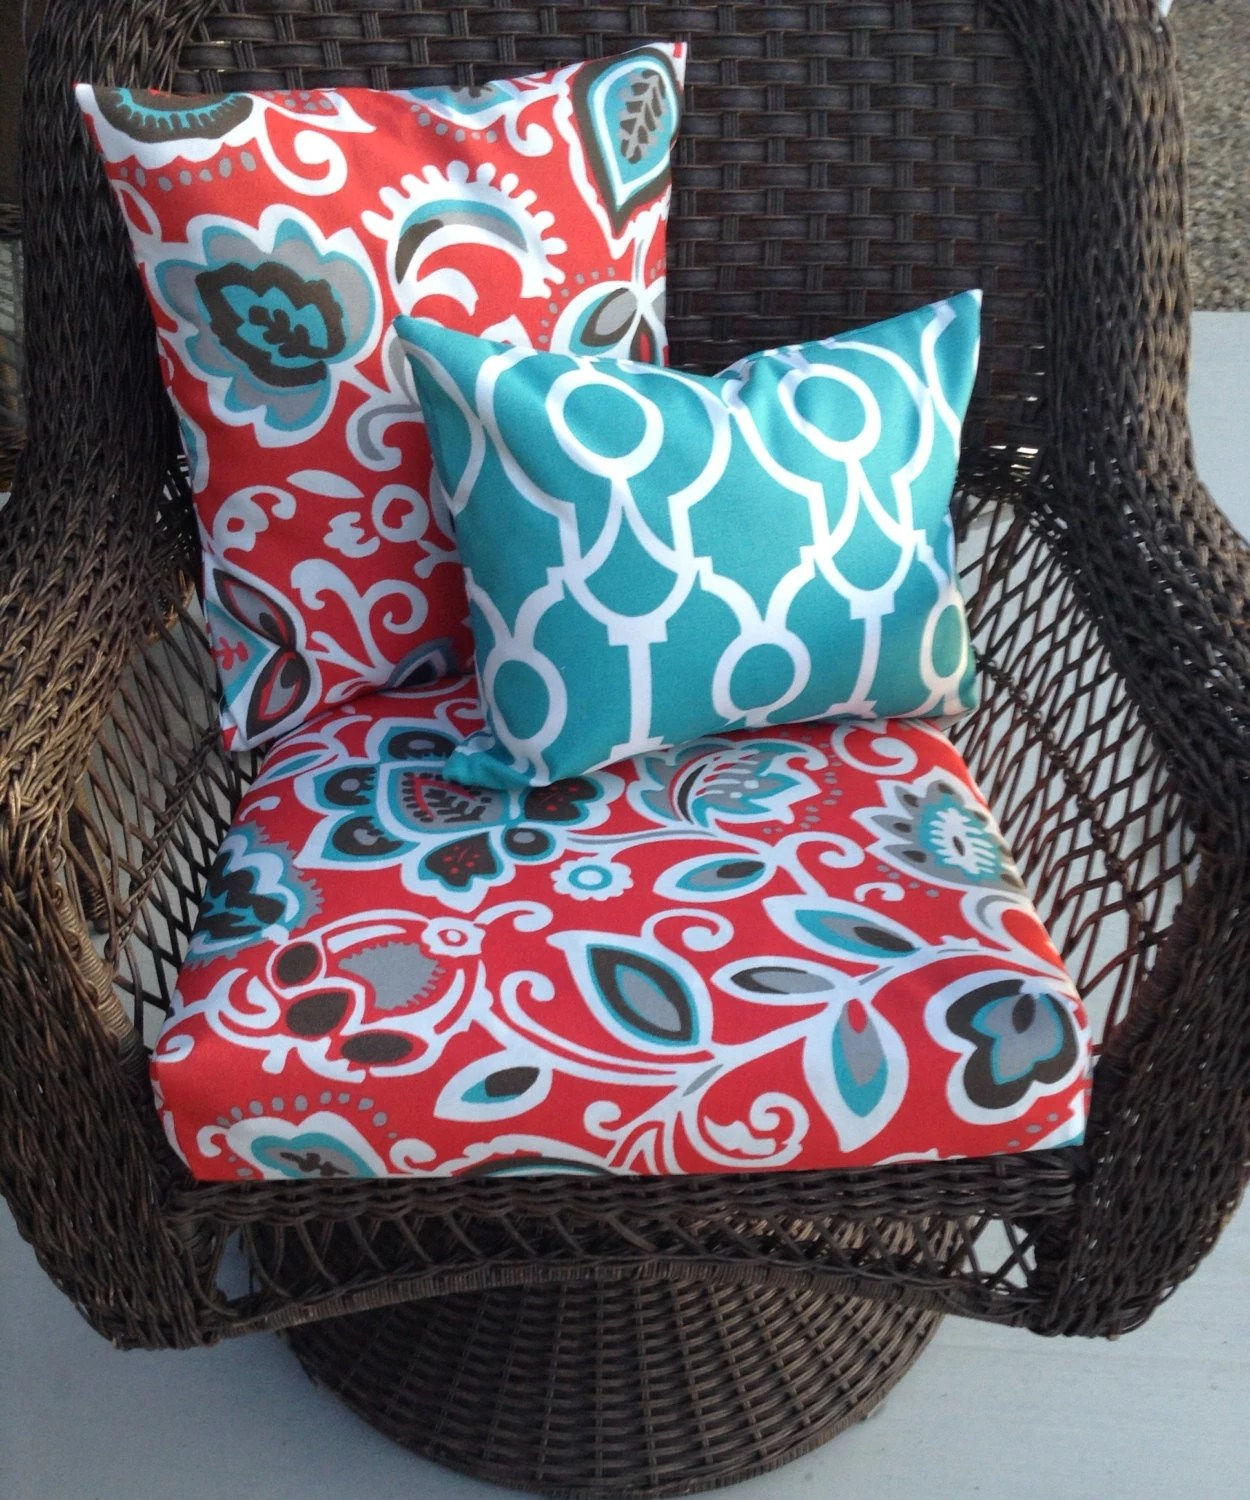 Cushion Covers For Chairs Coastal Colors Outdoor Patio Furniture Cushion Covers Outdoor